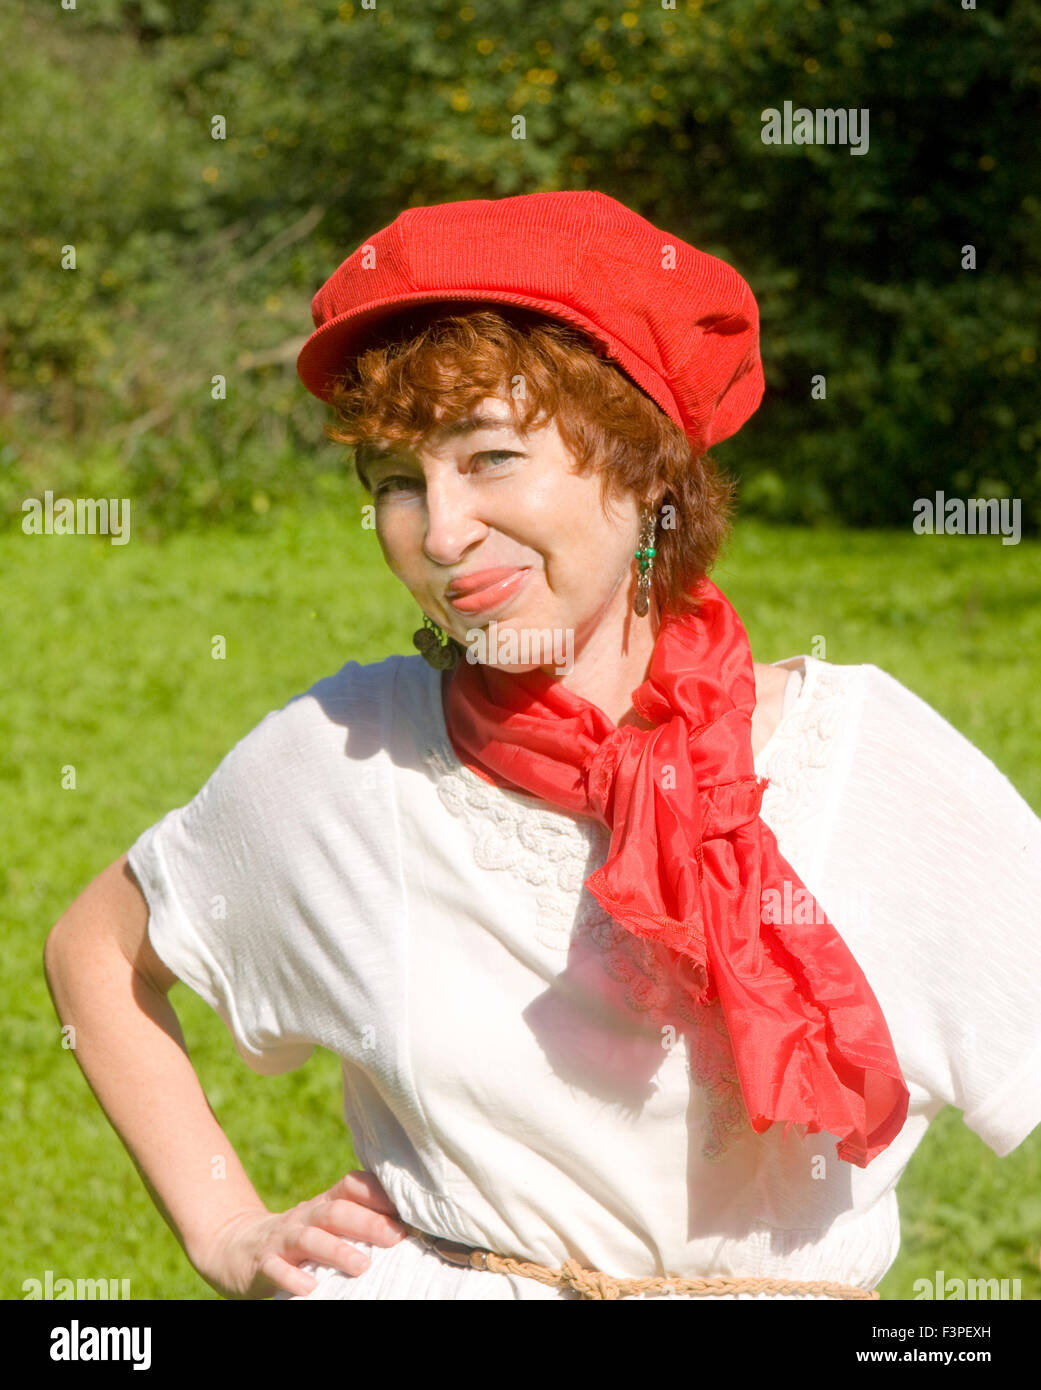 European woman in red hat smiling half body. - Stock Image